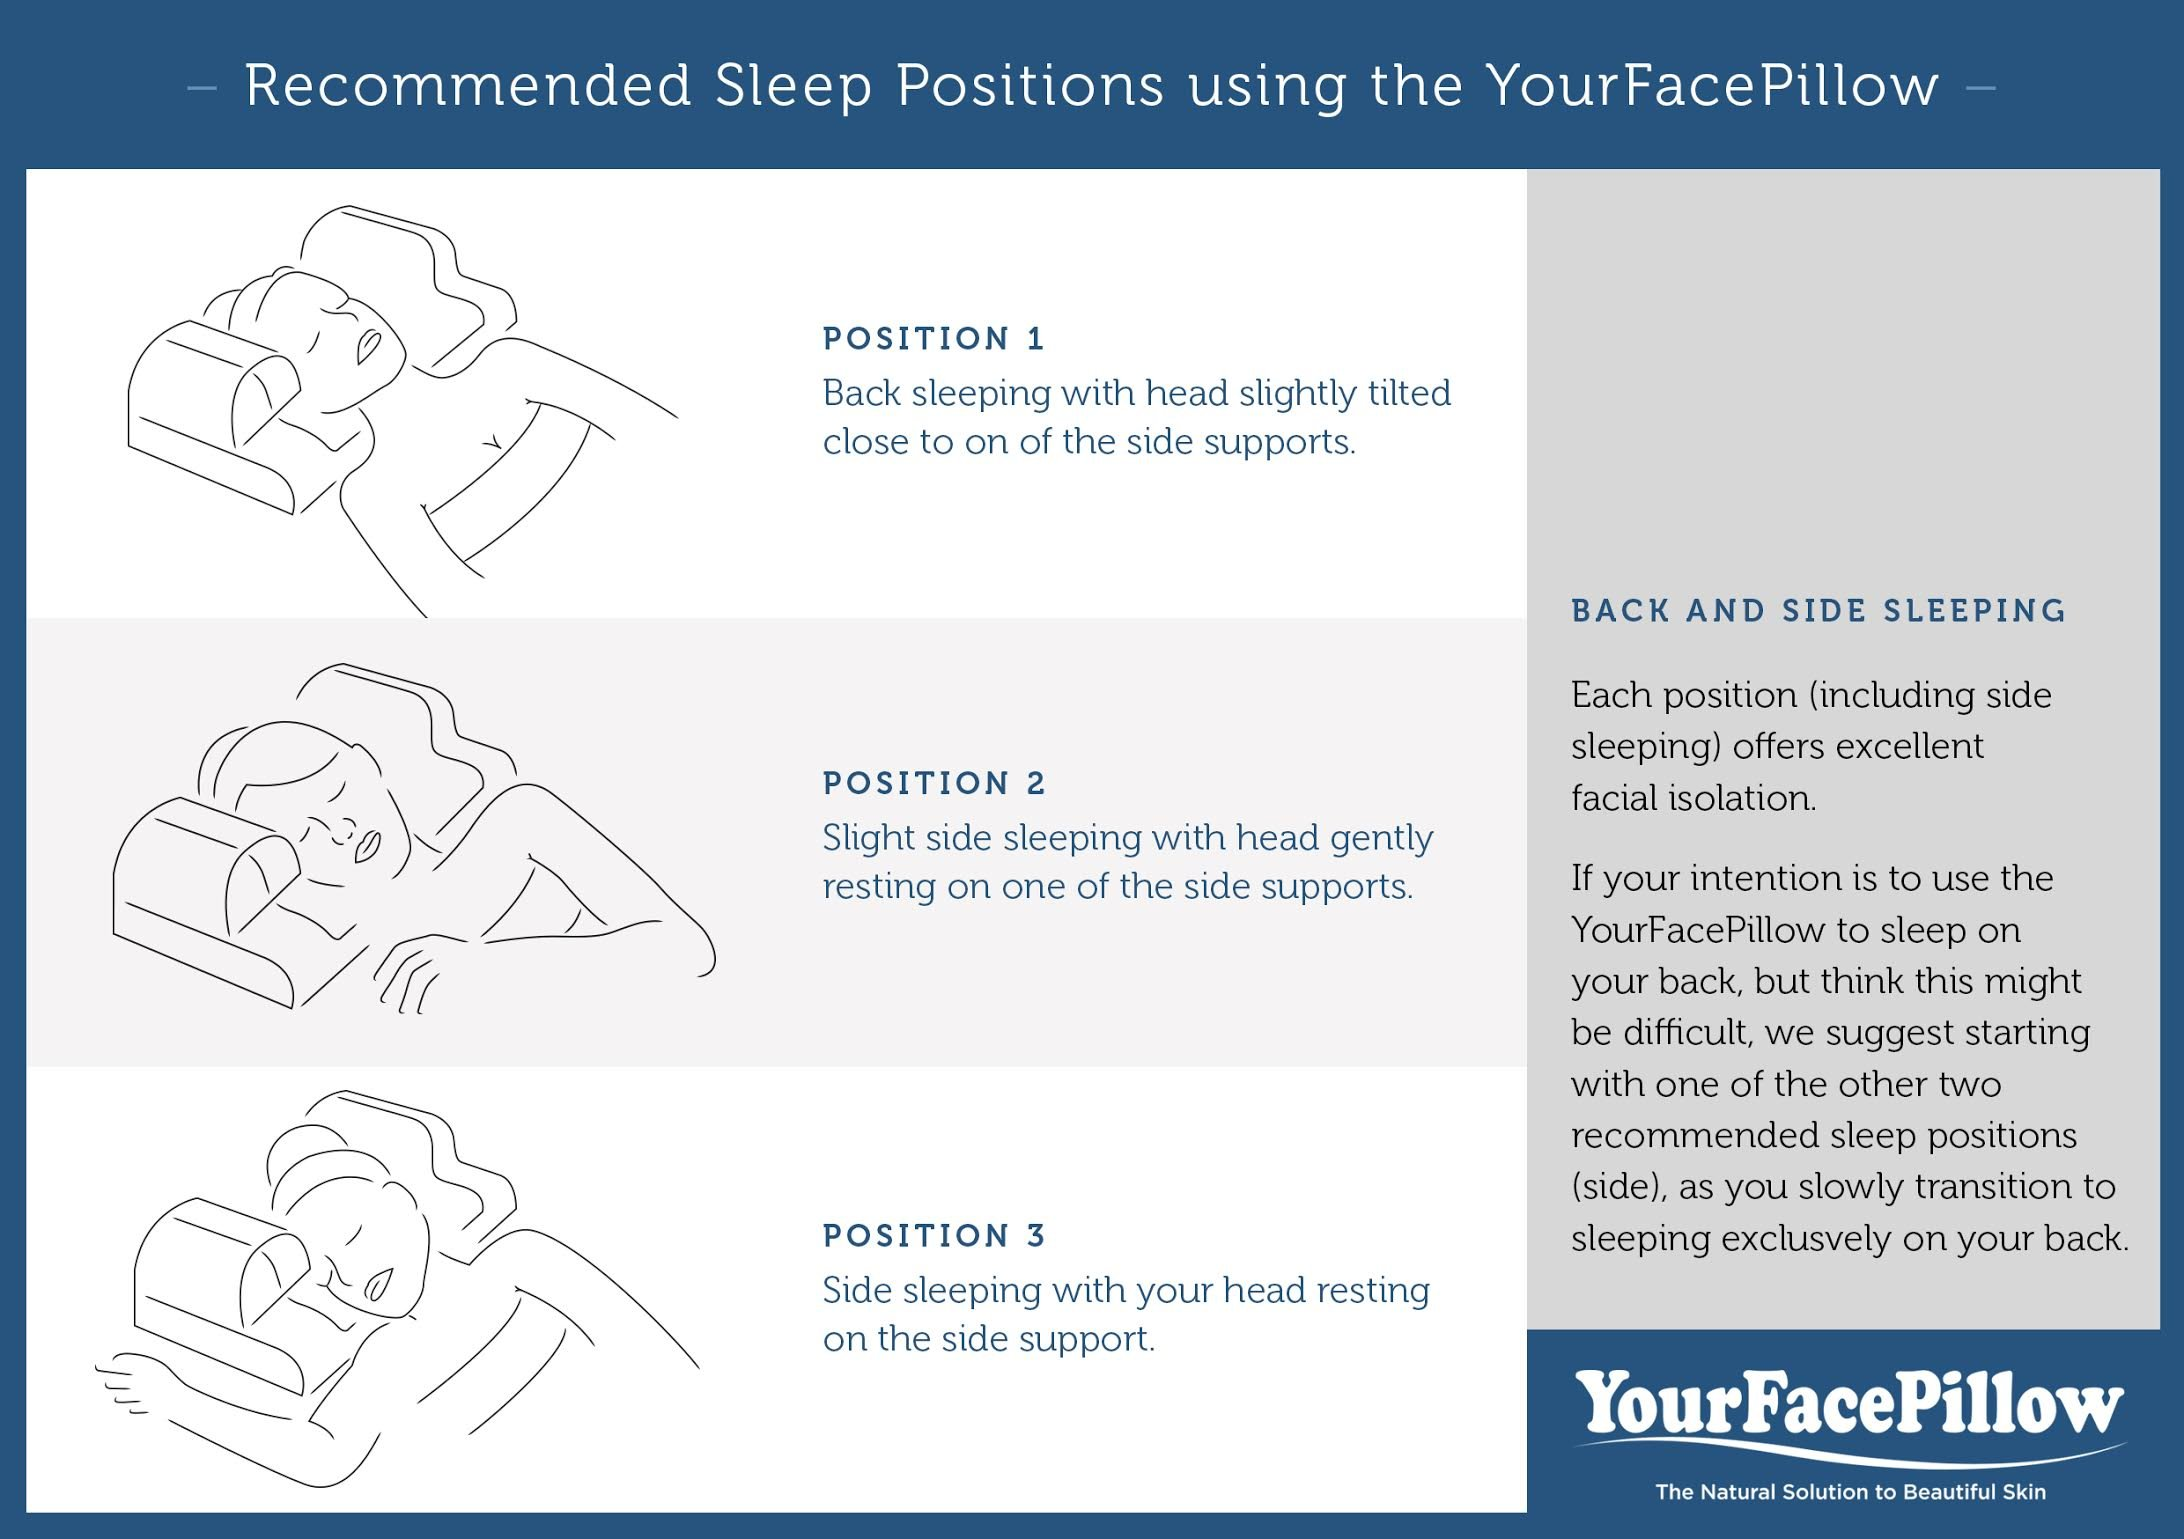 YourFacePillow - Anti Wrinkle | Anti Aging | Wrinkle Prevention | Acne Treatment | Natural Beauty | Back & Side Sleeping Pillow by YourFacePillow (Image #4)